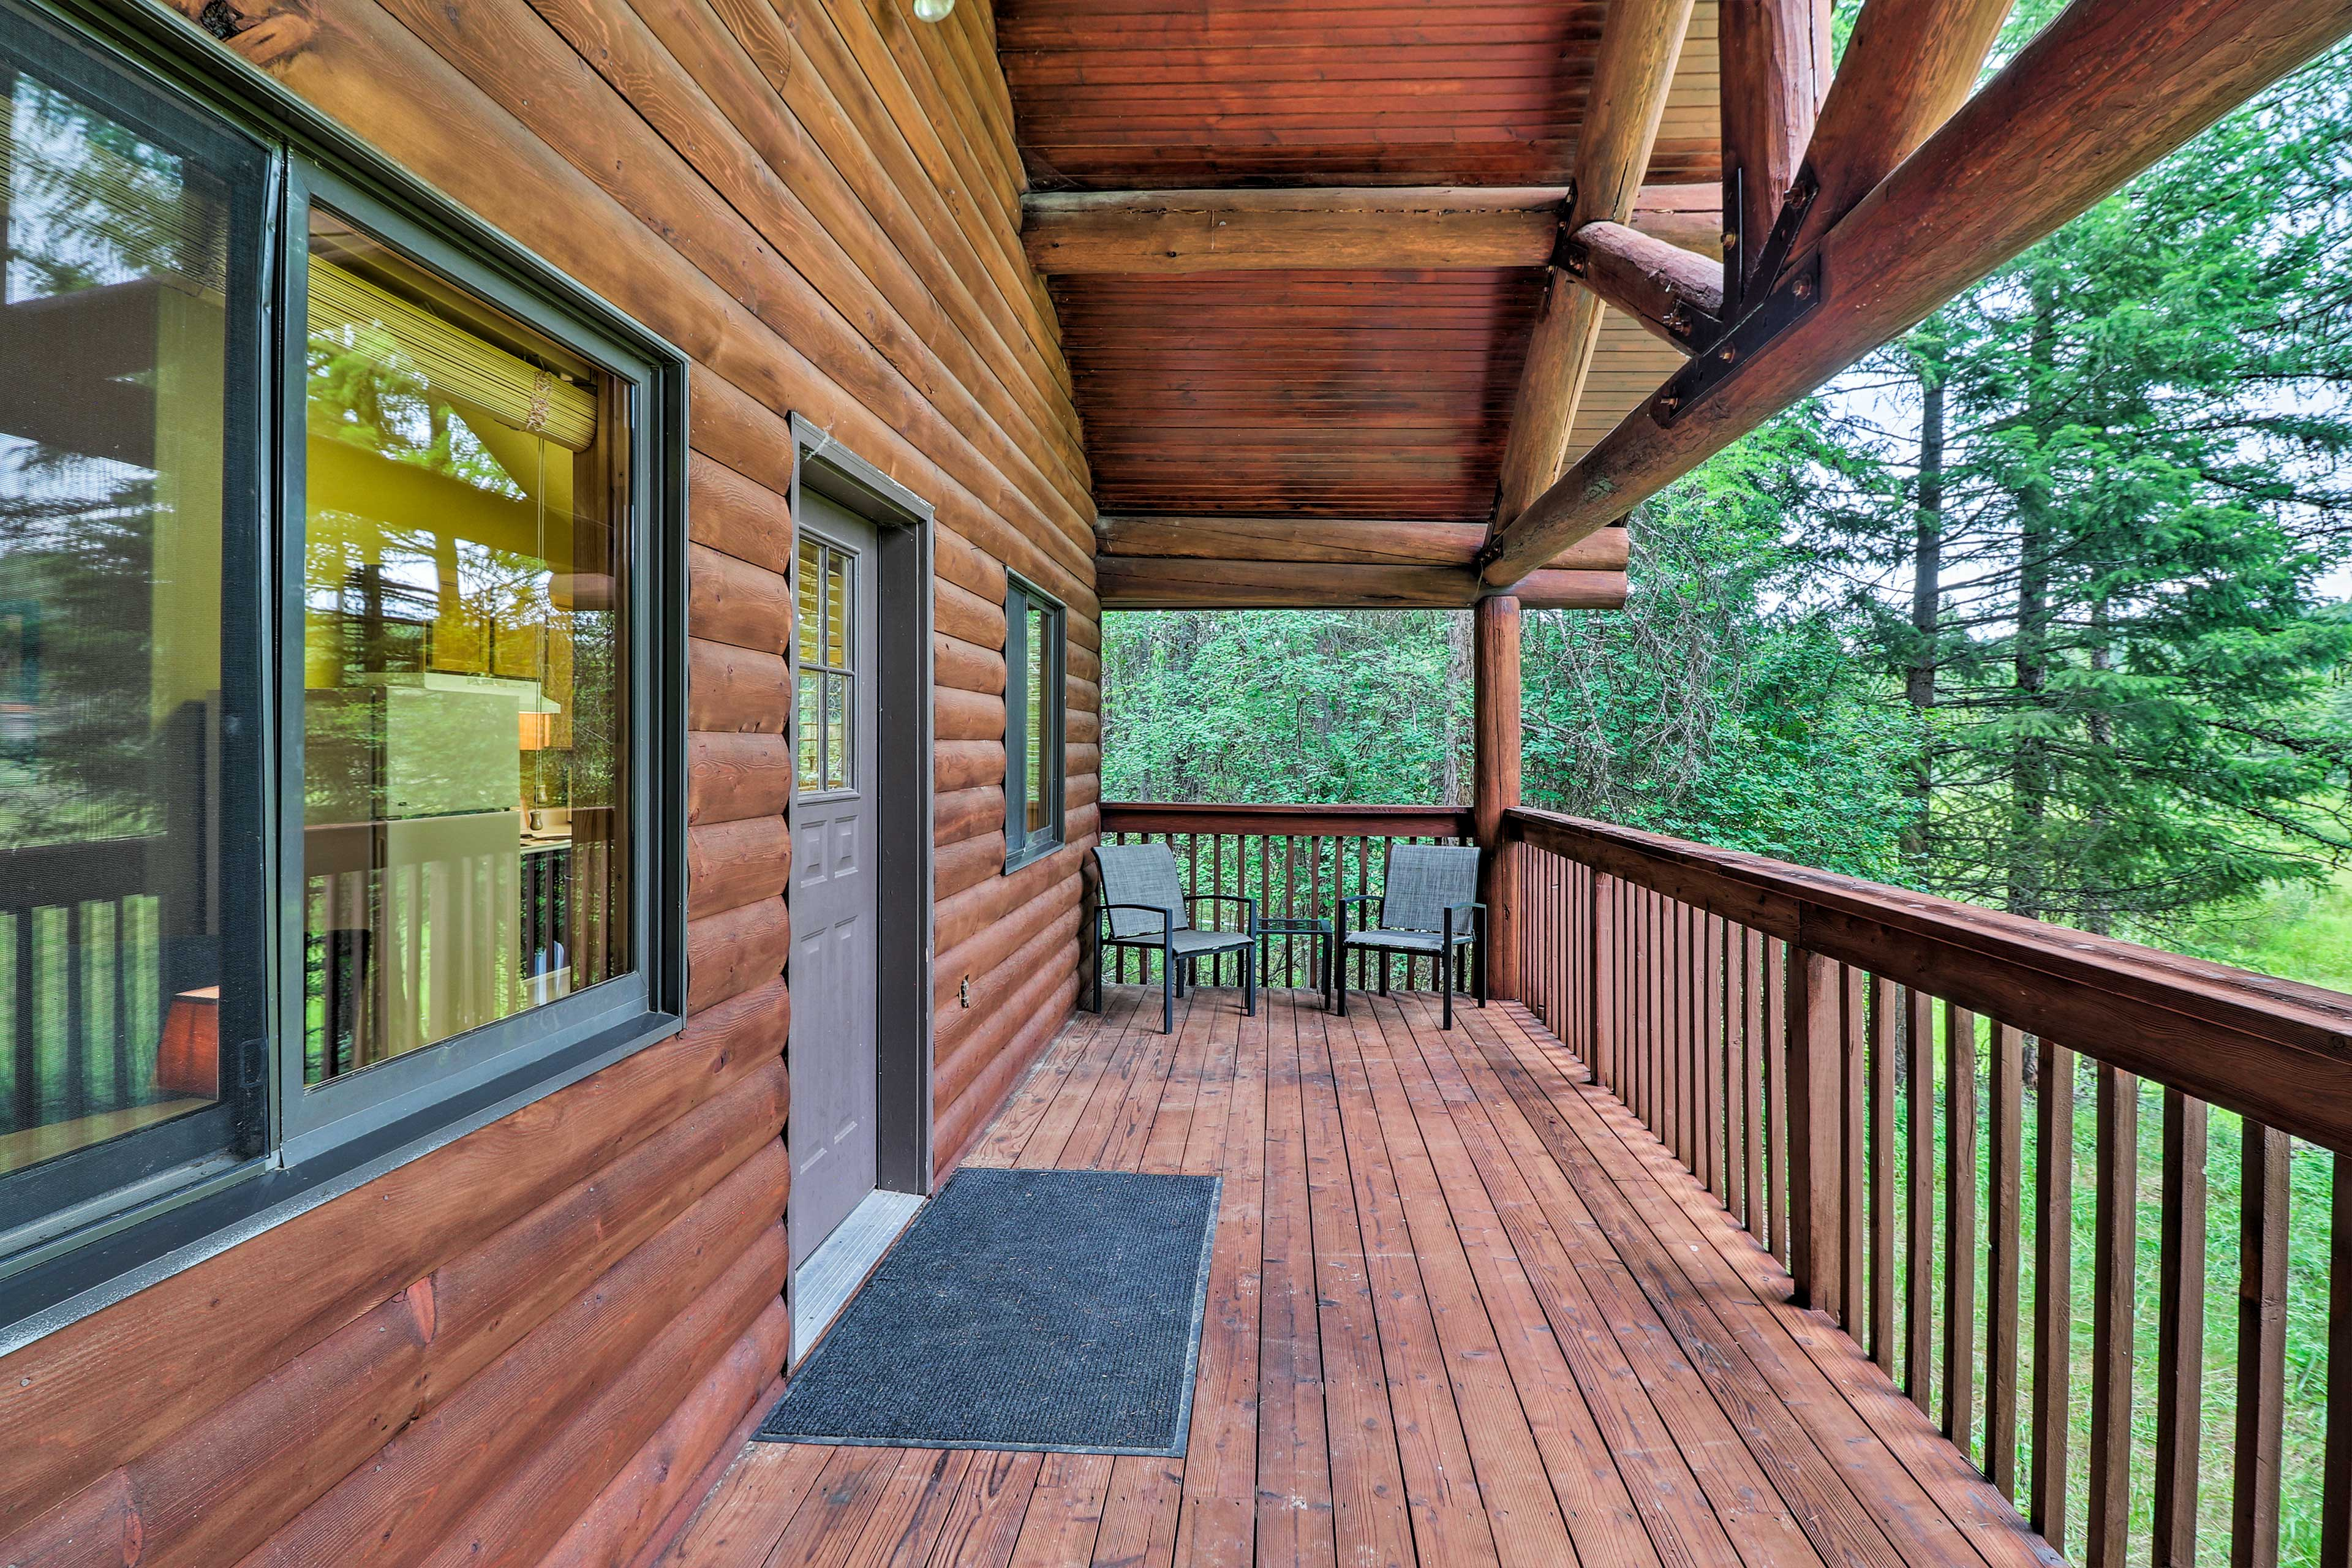 Relax on the furnished deck with mountain views.